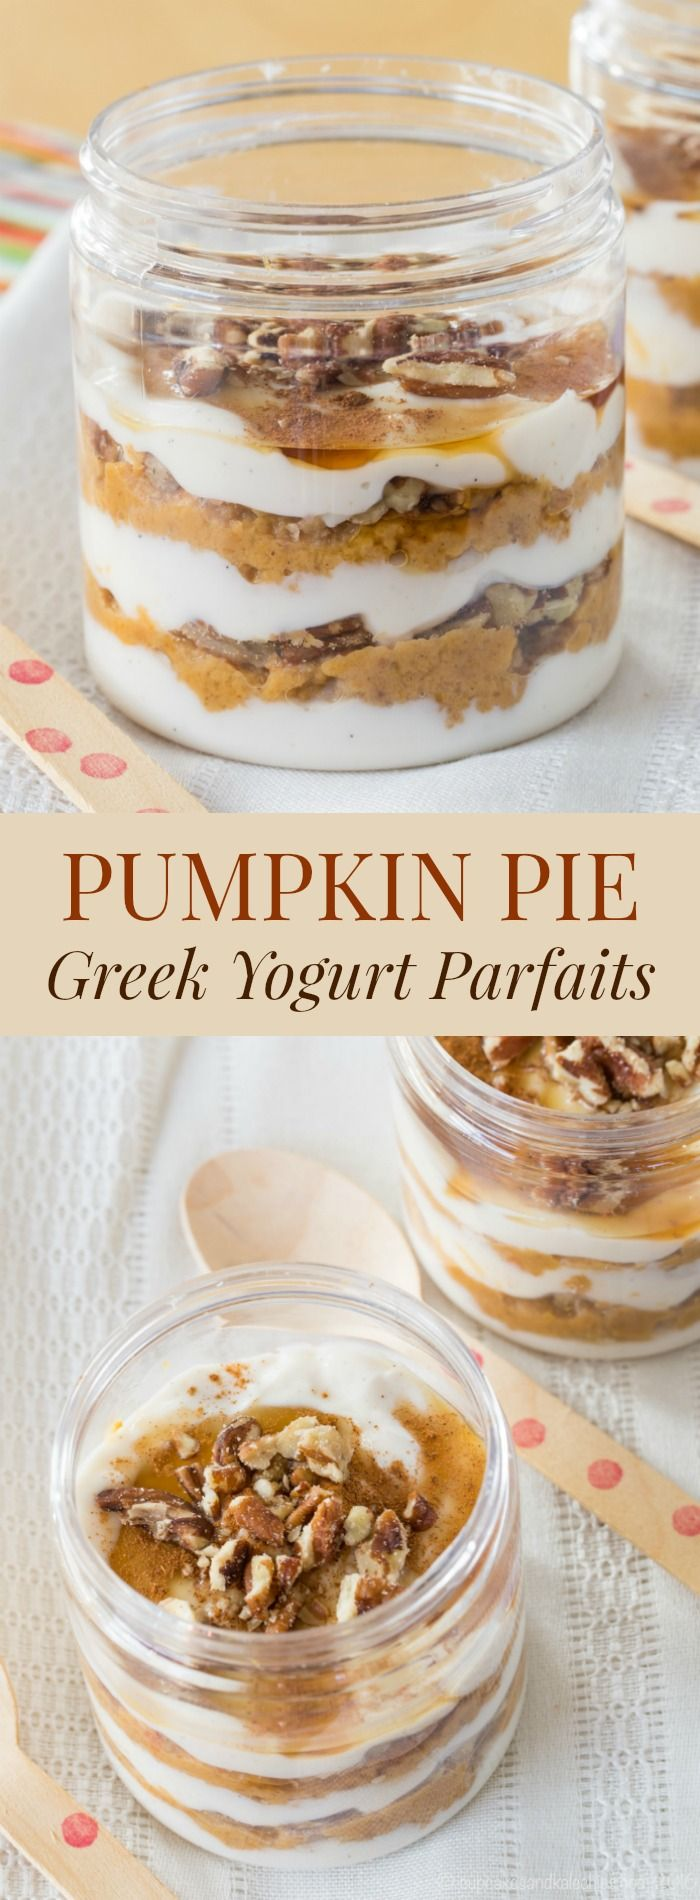 Pumpkin Pie Greek Yogurt Parfaits - an easy recipe for dessert, snack, or breakfast to use up leftover pumpkin pie.